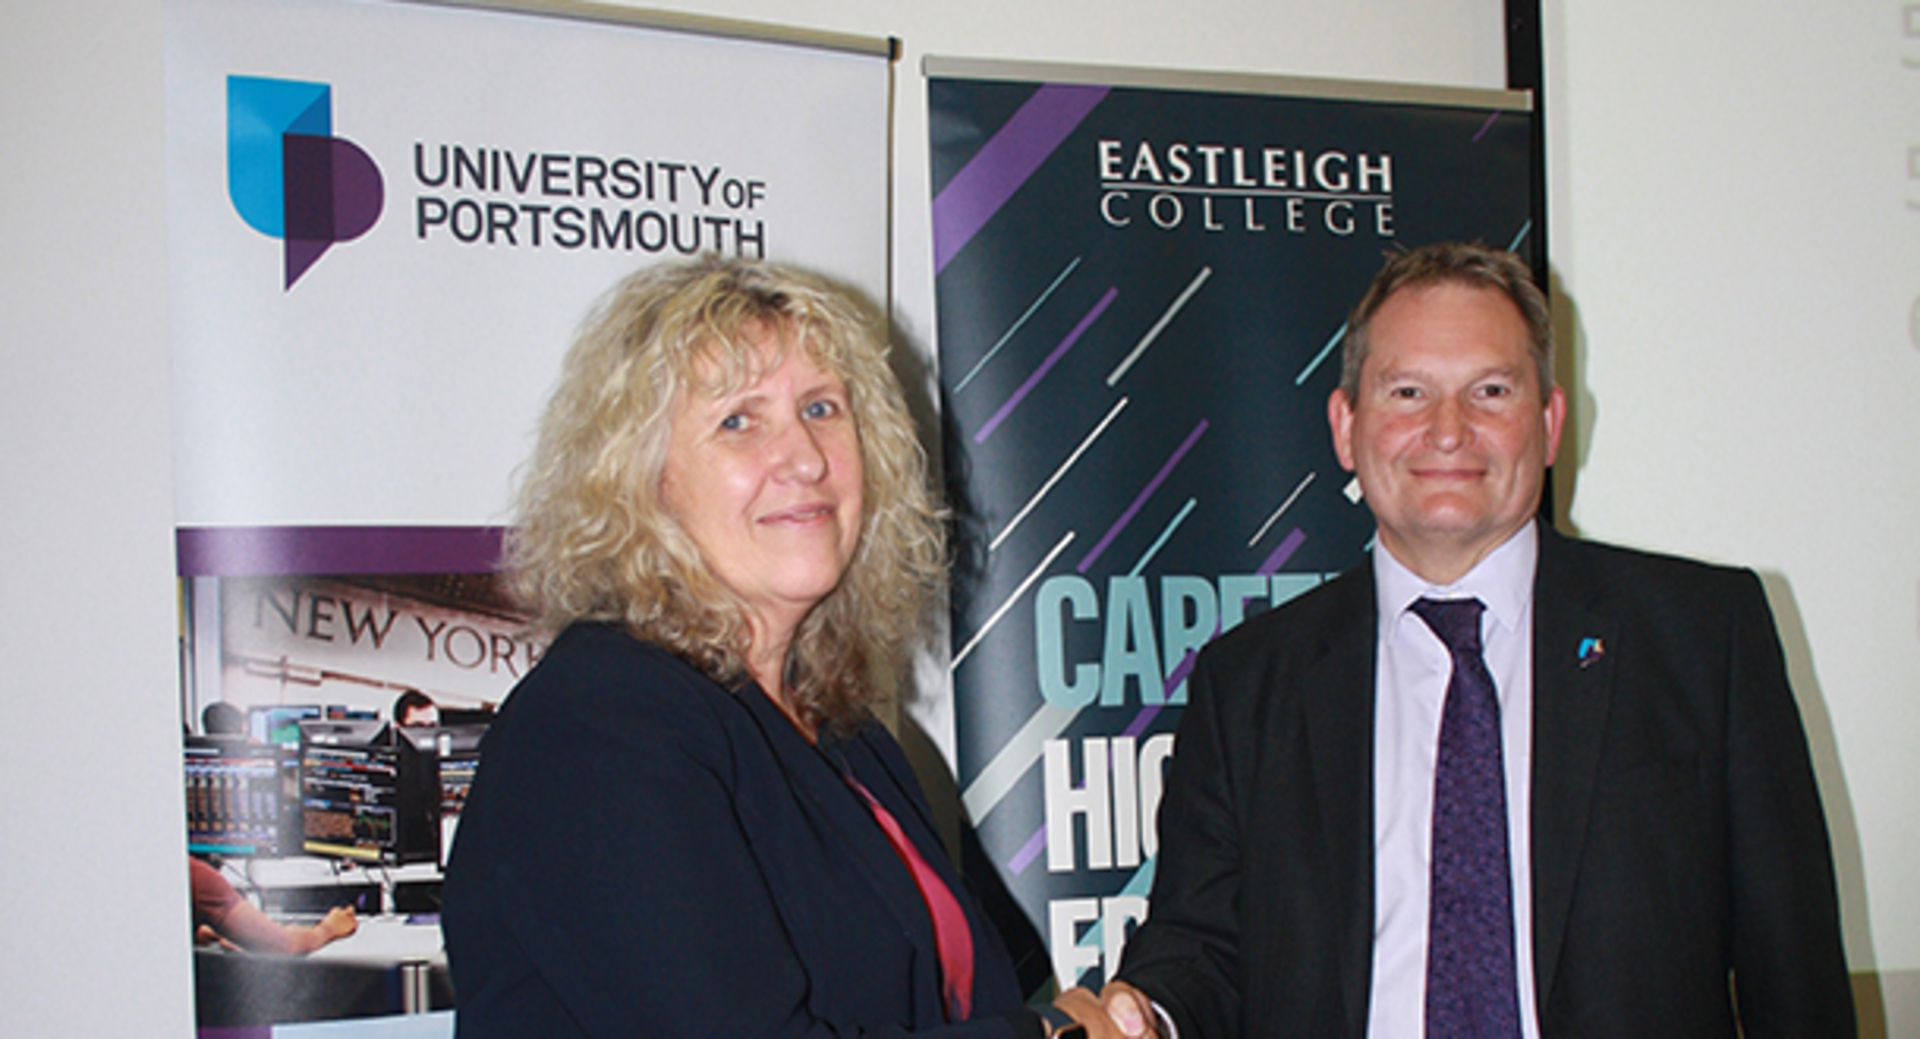 Eastleigh College students reap benefits of university partnership